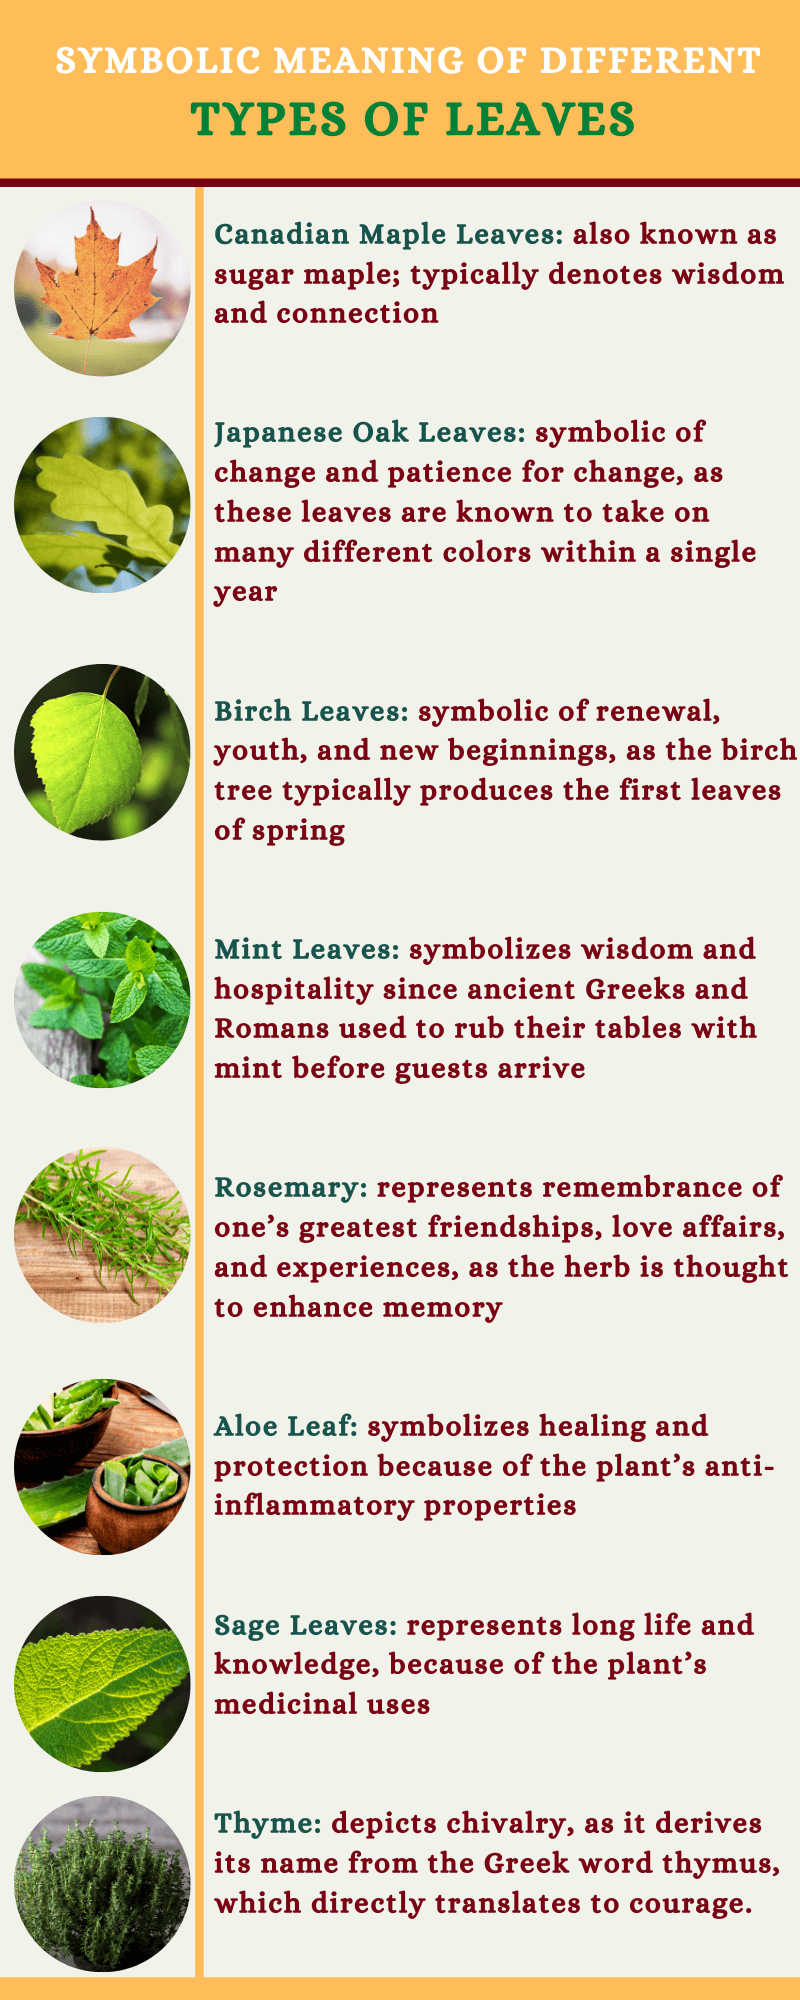 Types of leaves meaning